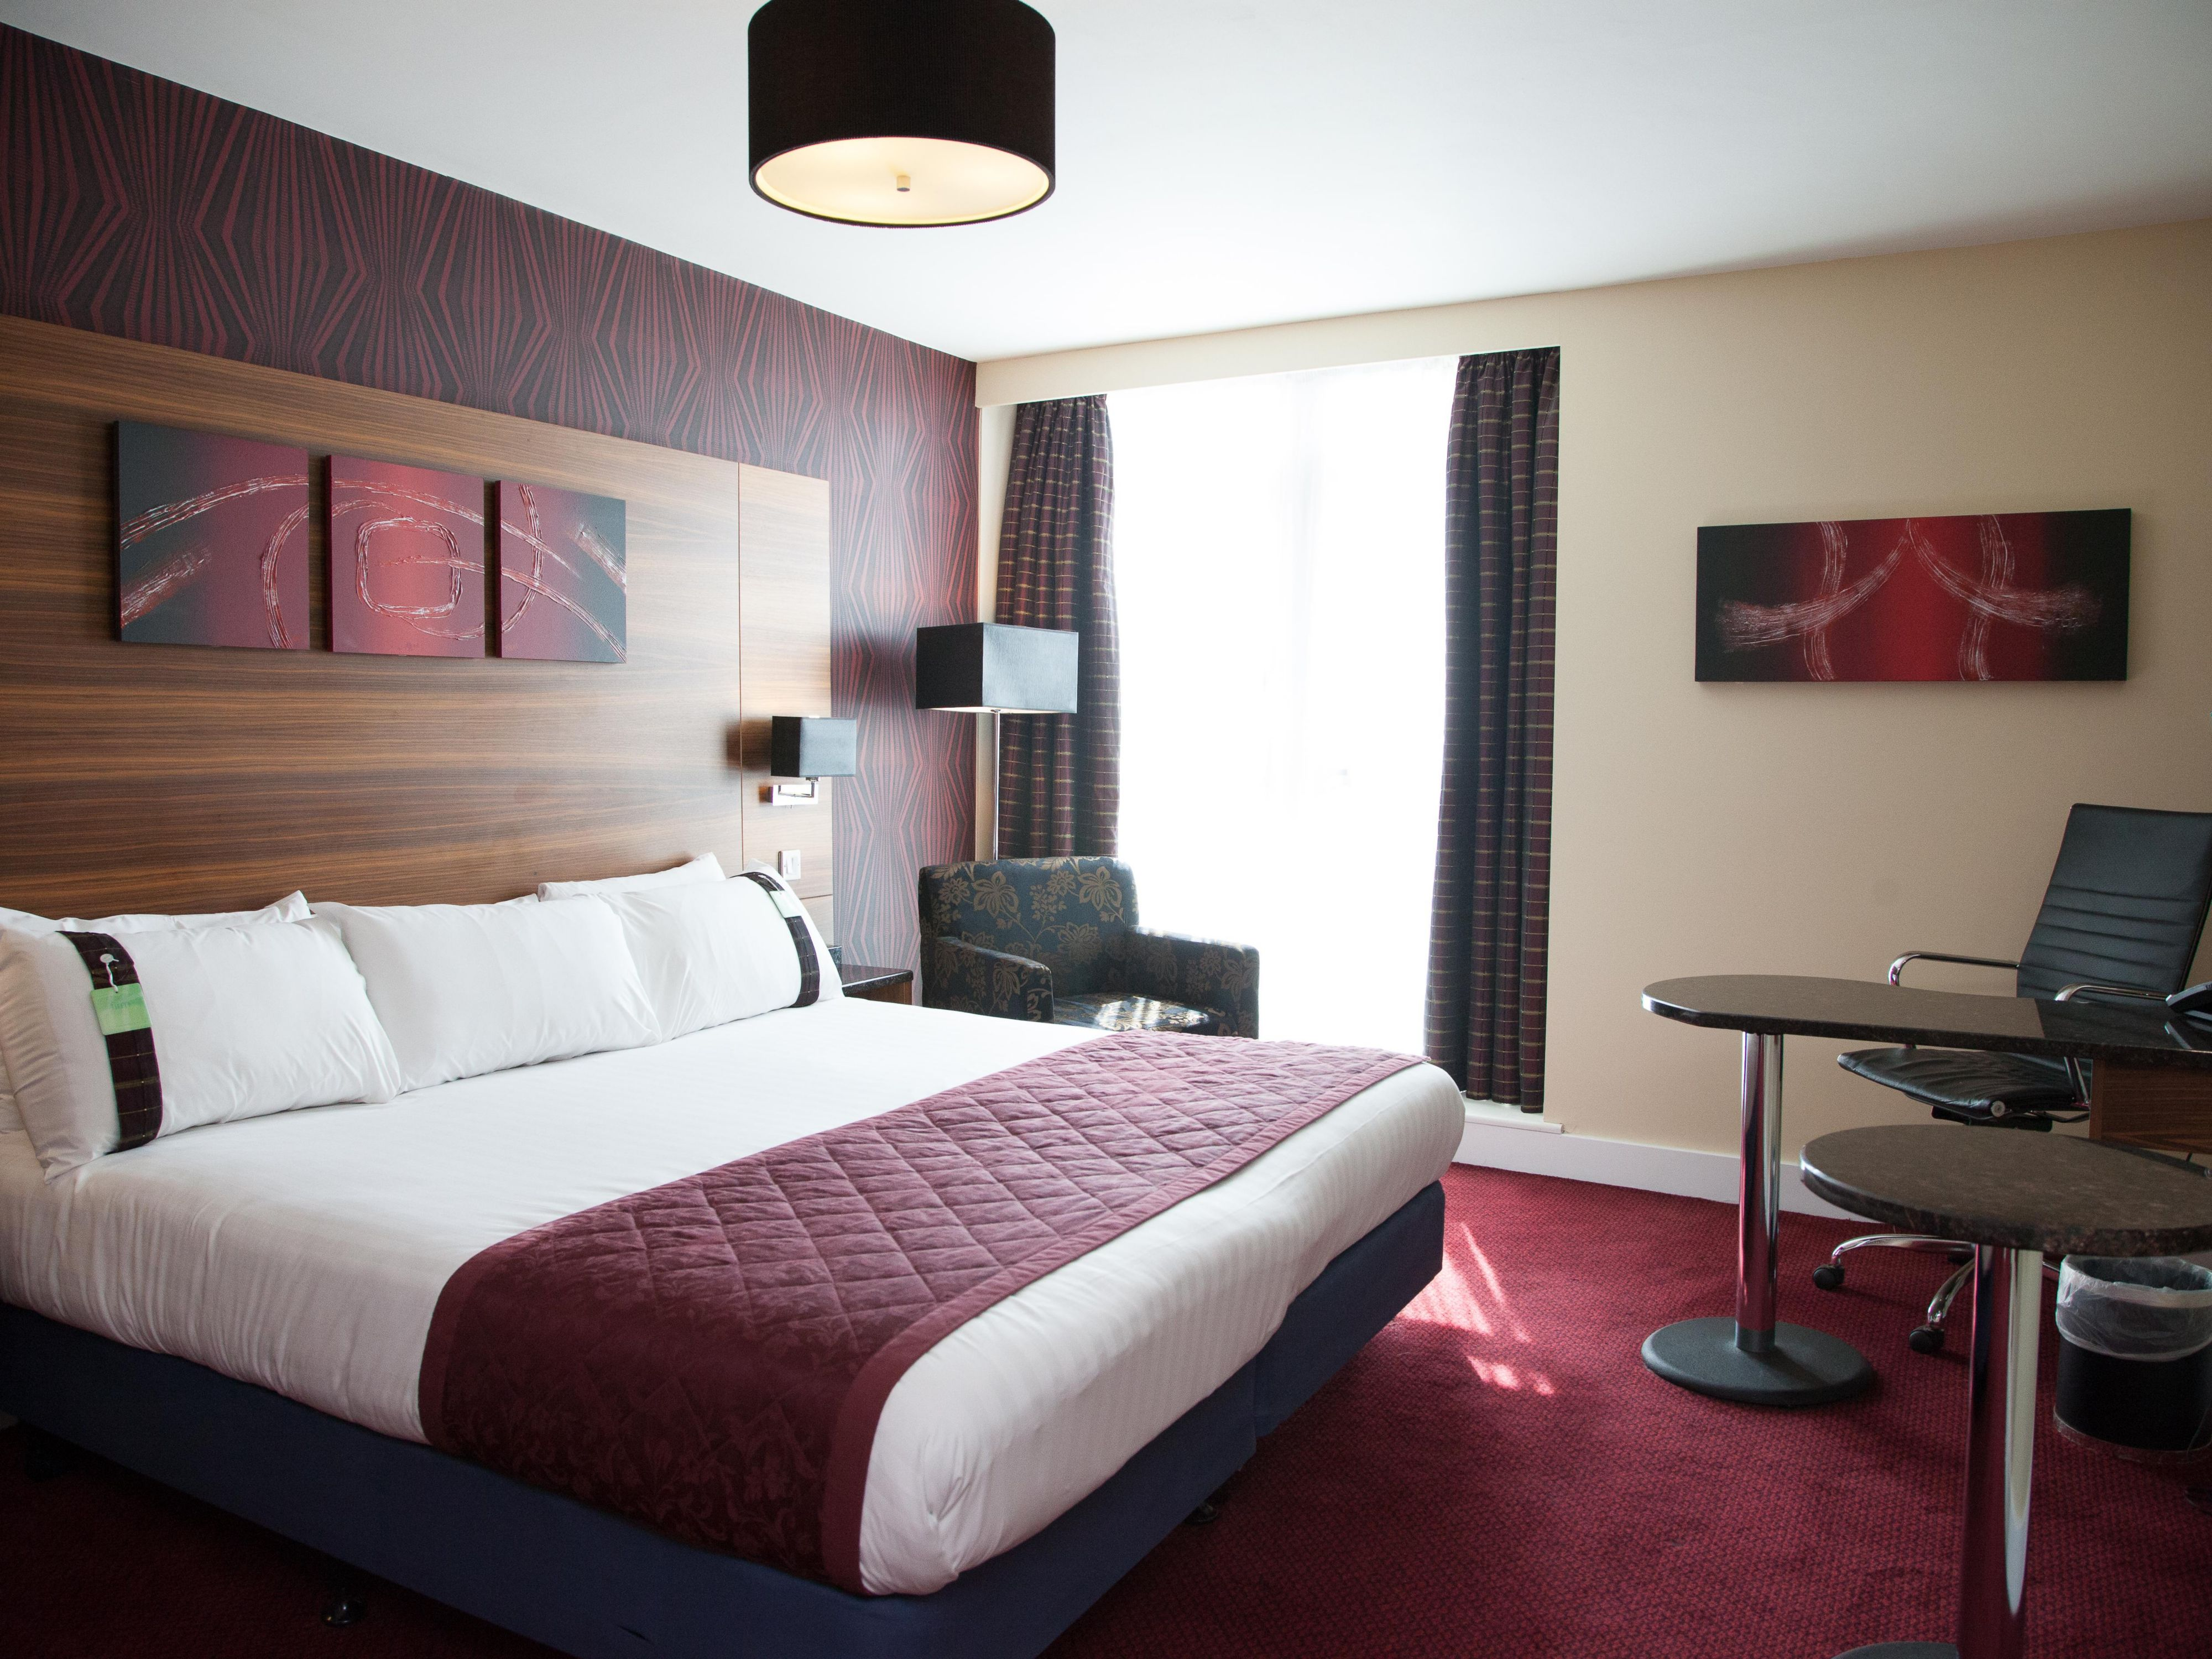 Make yourself at home in one of our Executive Guest rooms